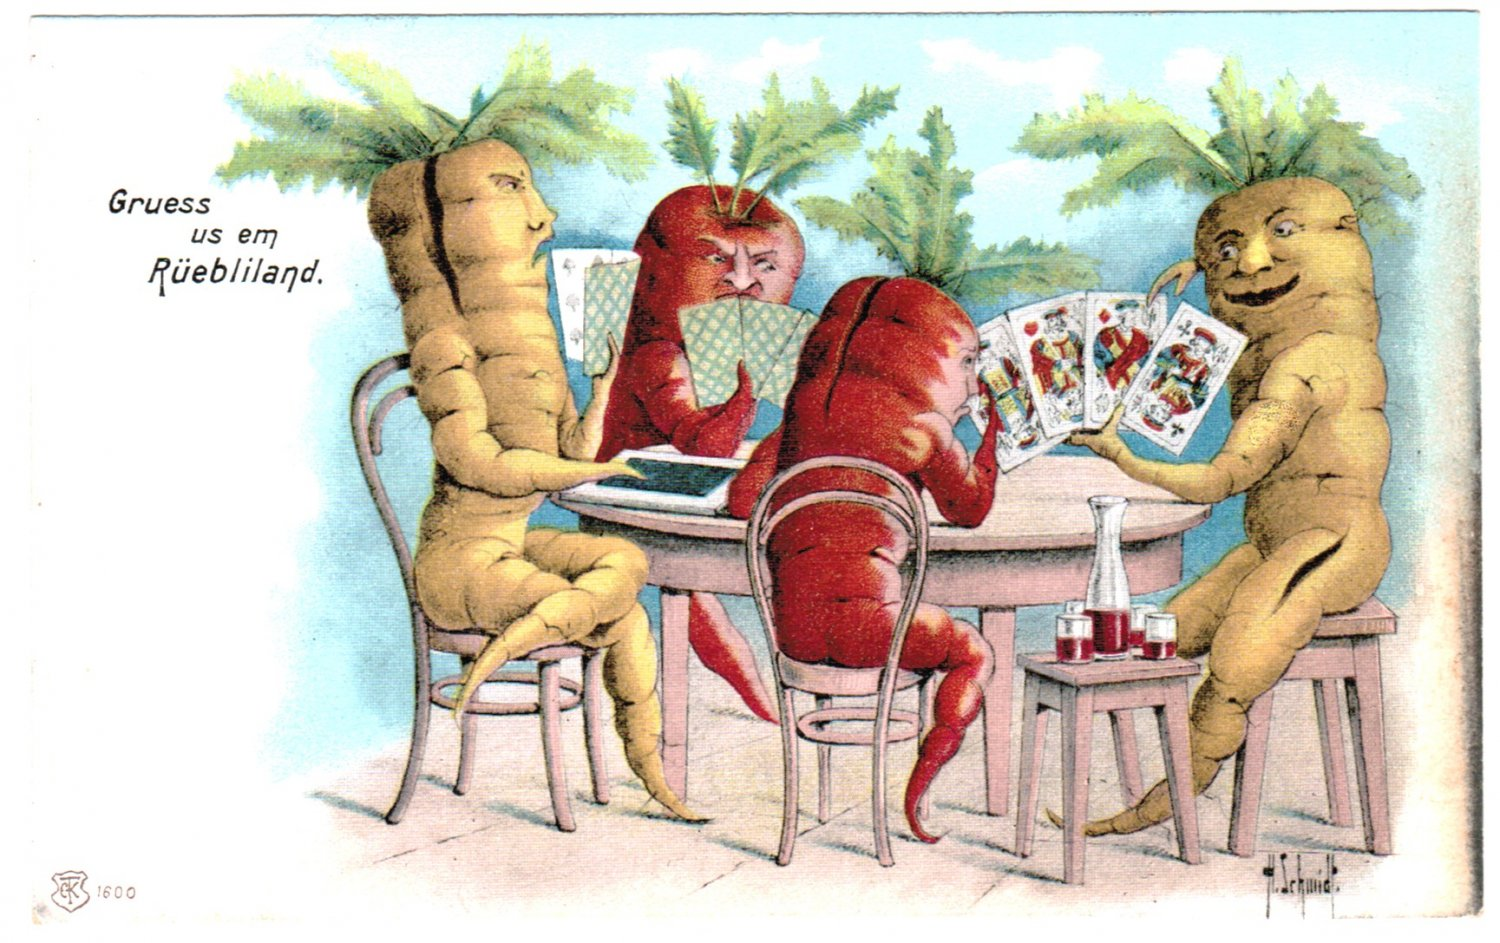 VERY RARE c1920 VEGETABLE VEGGIE CARROT PEOPLE VINTAGE FANTASY POSTCARD ANTHROPOMORPHIC